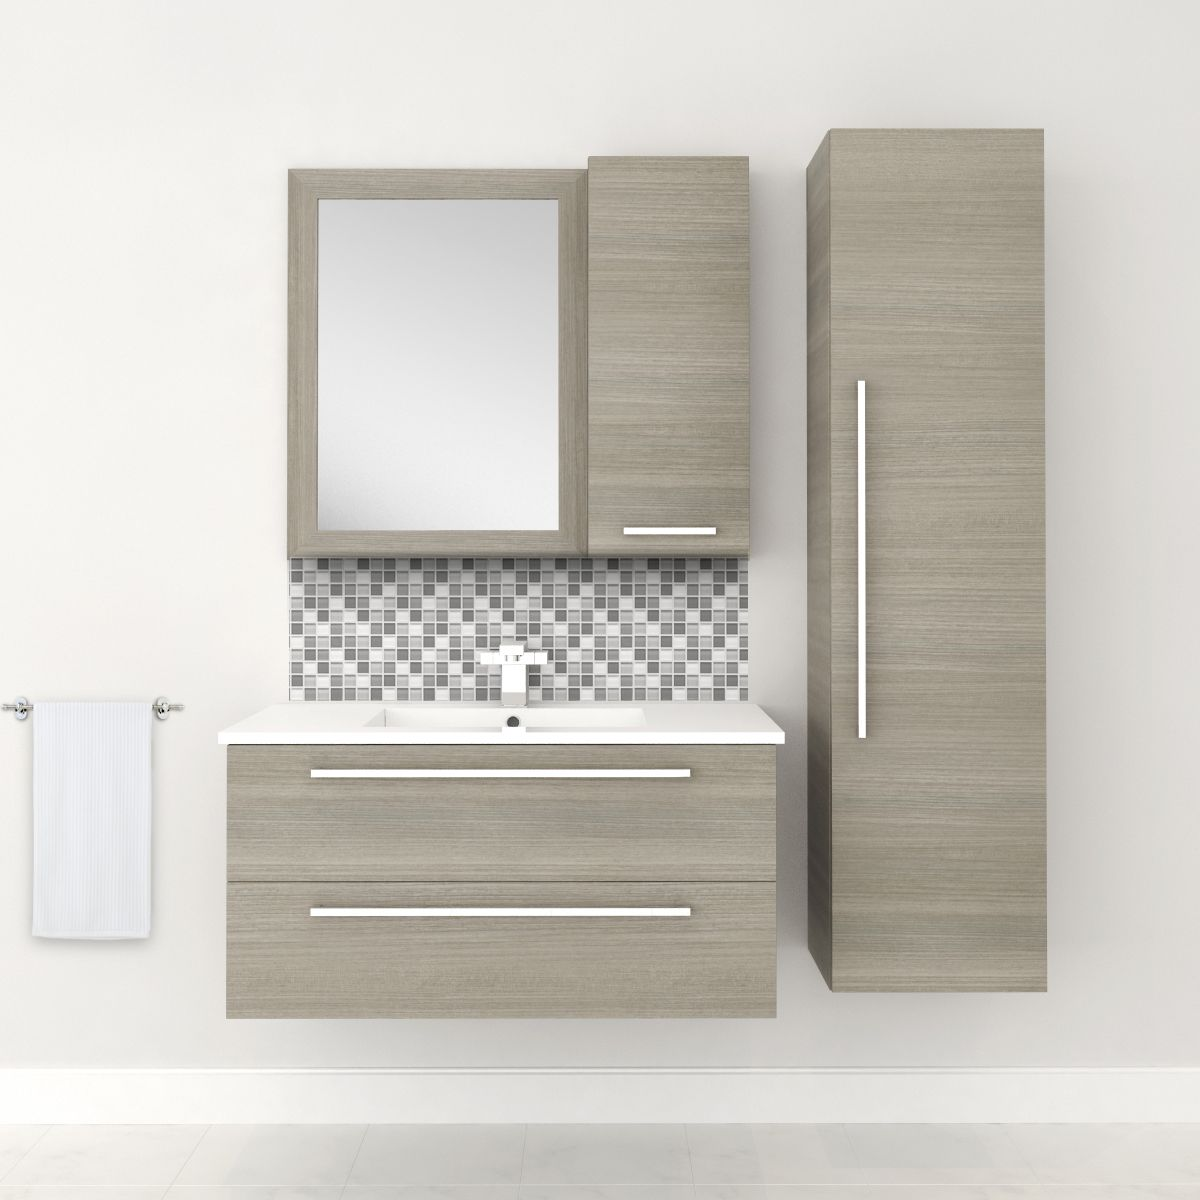 mesmerizing collection a x and textures w bath d vanity awesome new room kitchen awaits in cutler silhouette